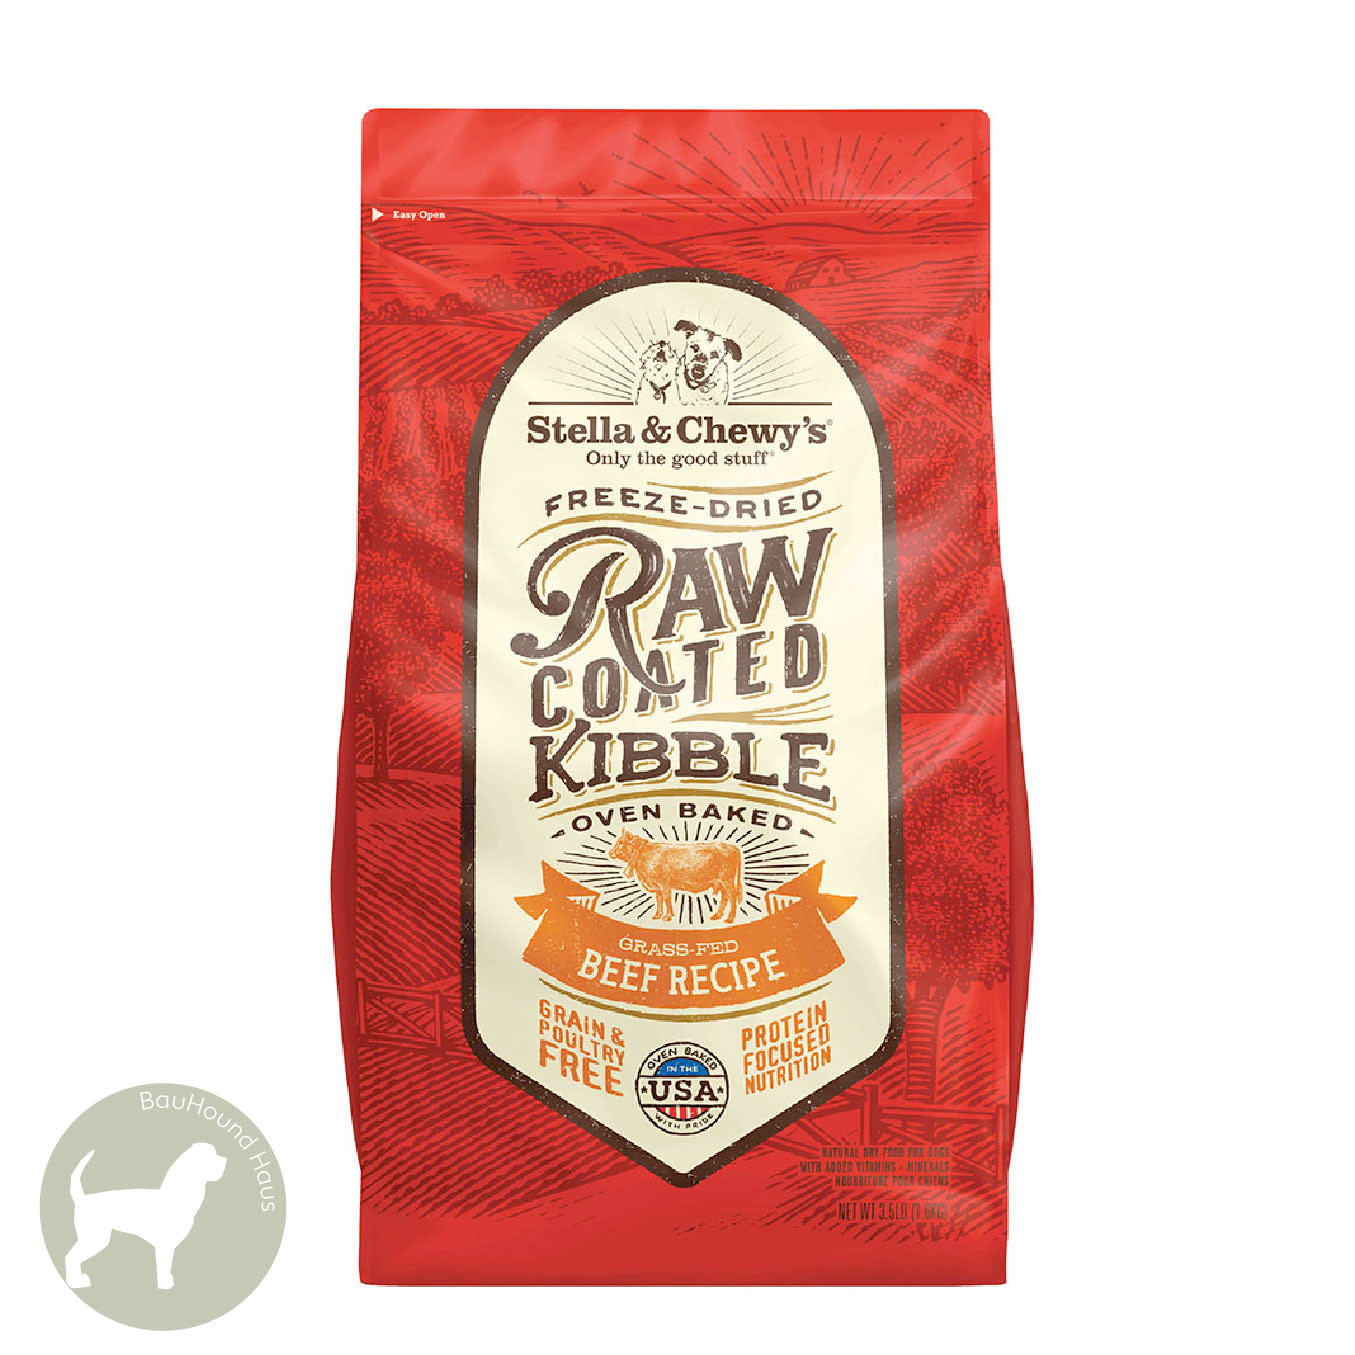 Stella & Chewy's Stella & Chewy's Freeze Dried Raw Coated Kibble Beef Recipe 3.5lb